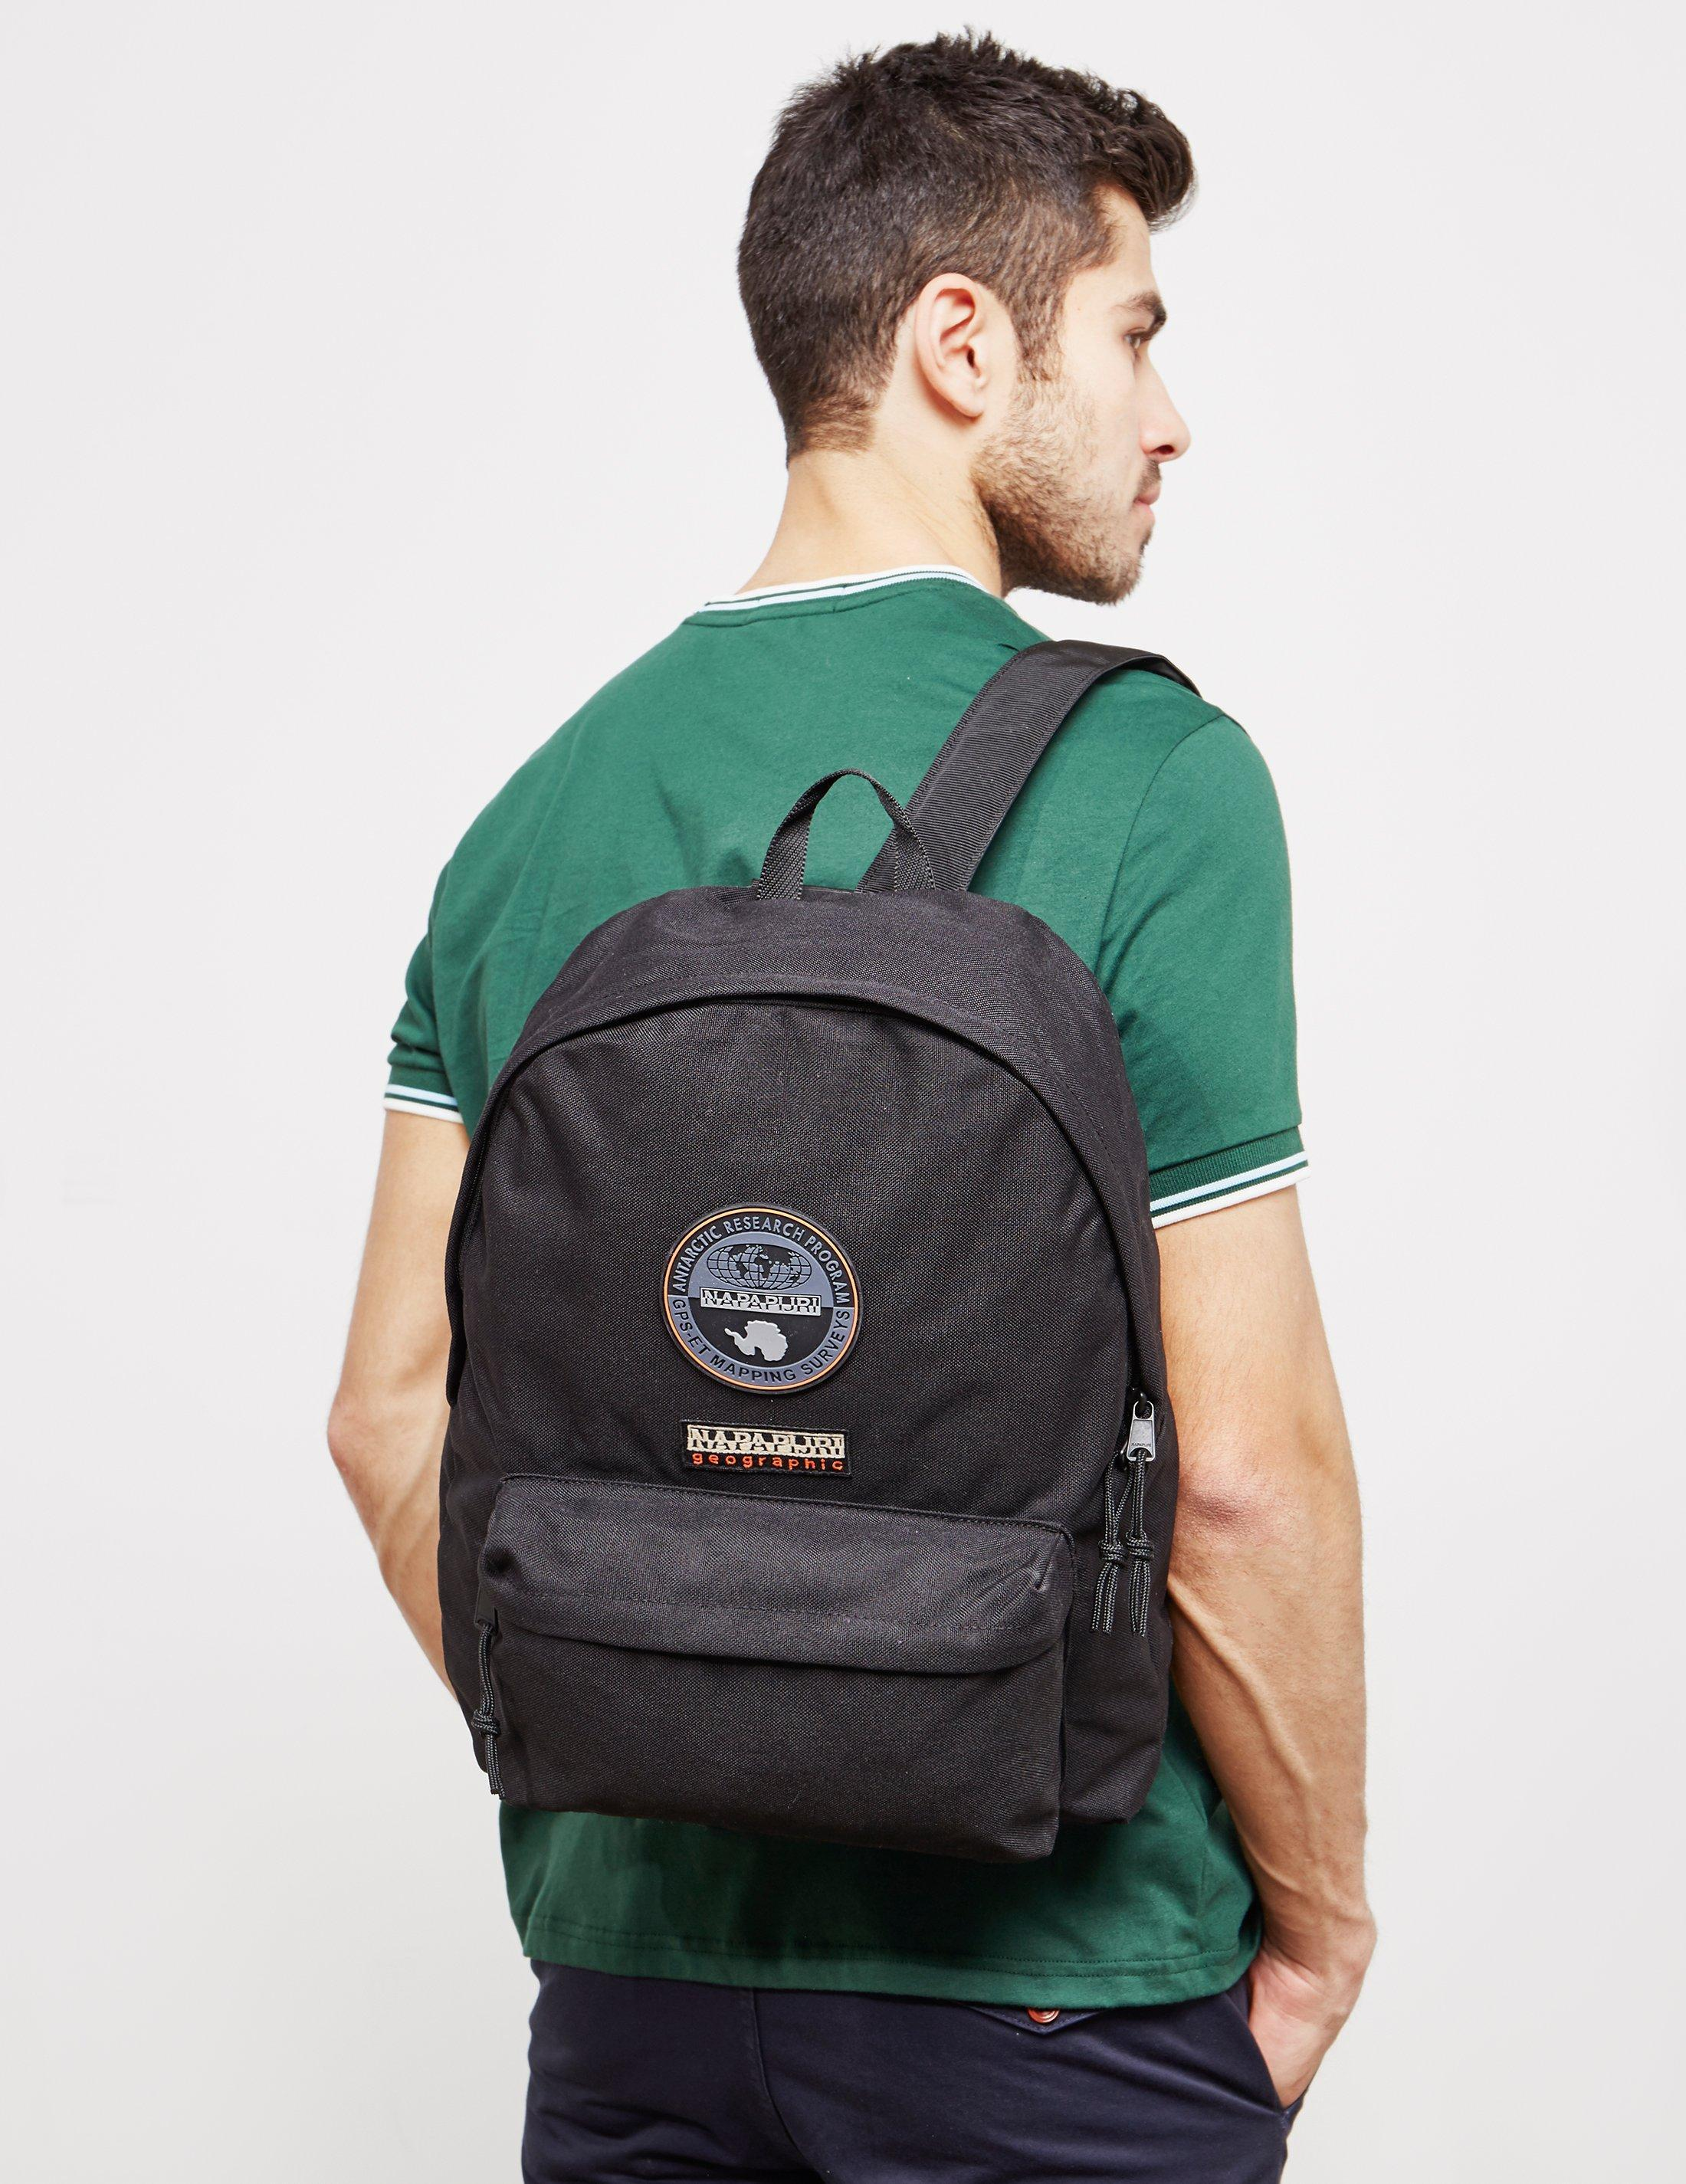 Lyst - Napapijri Voyage Backpack Black in Black for Men - Save 40%